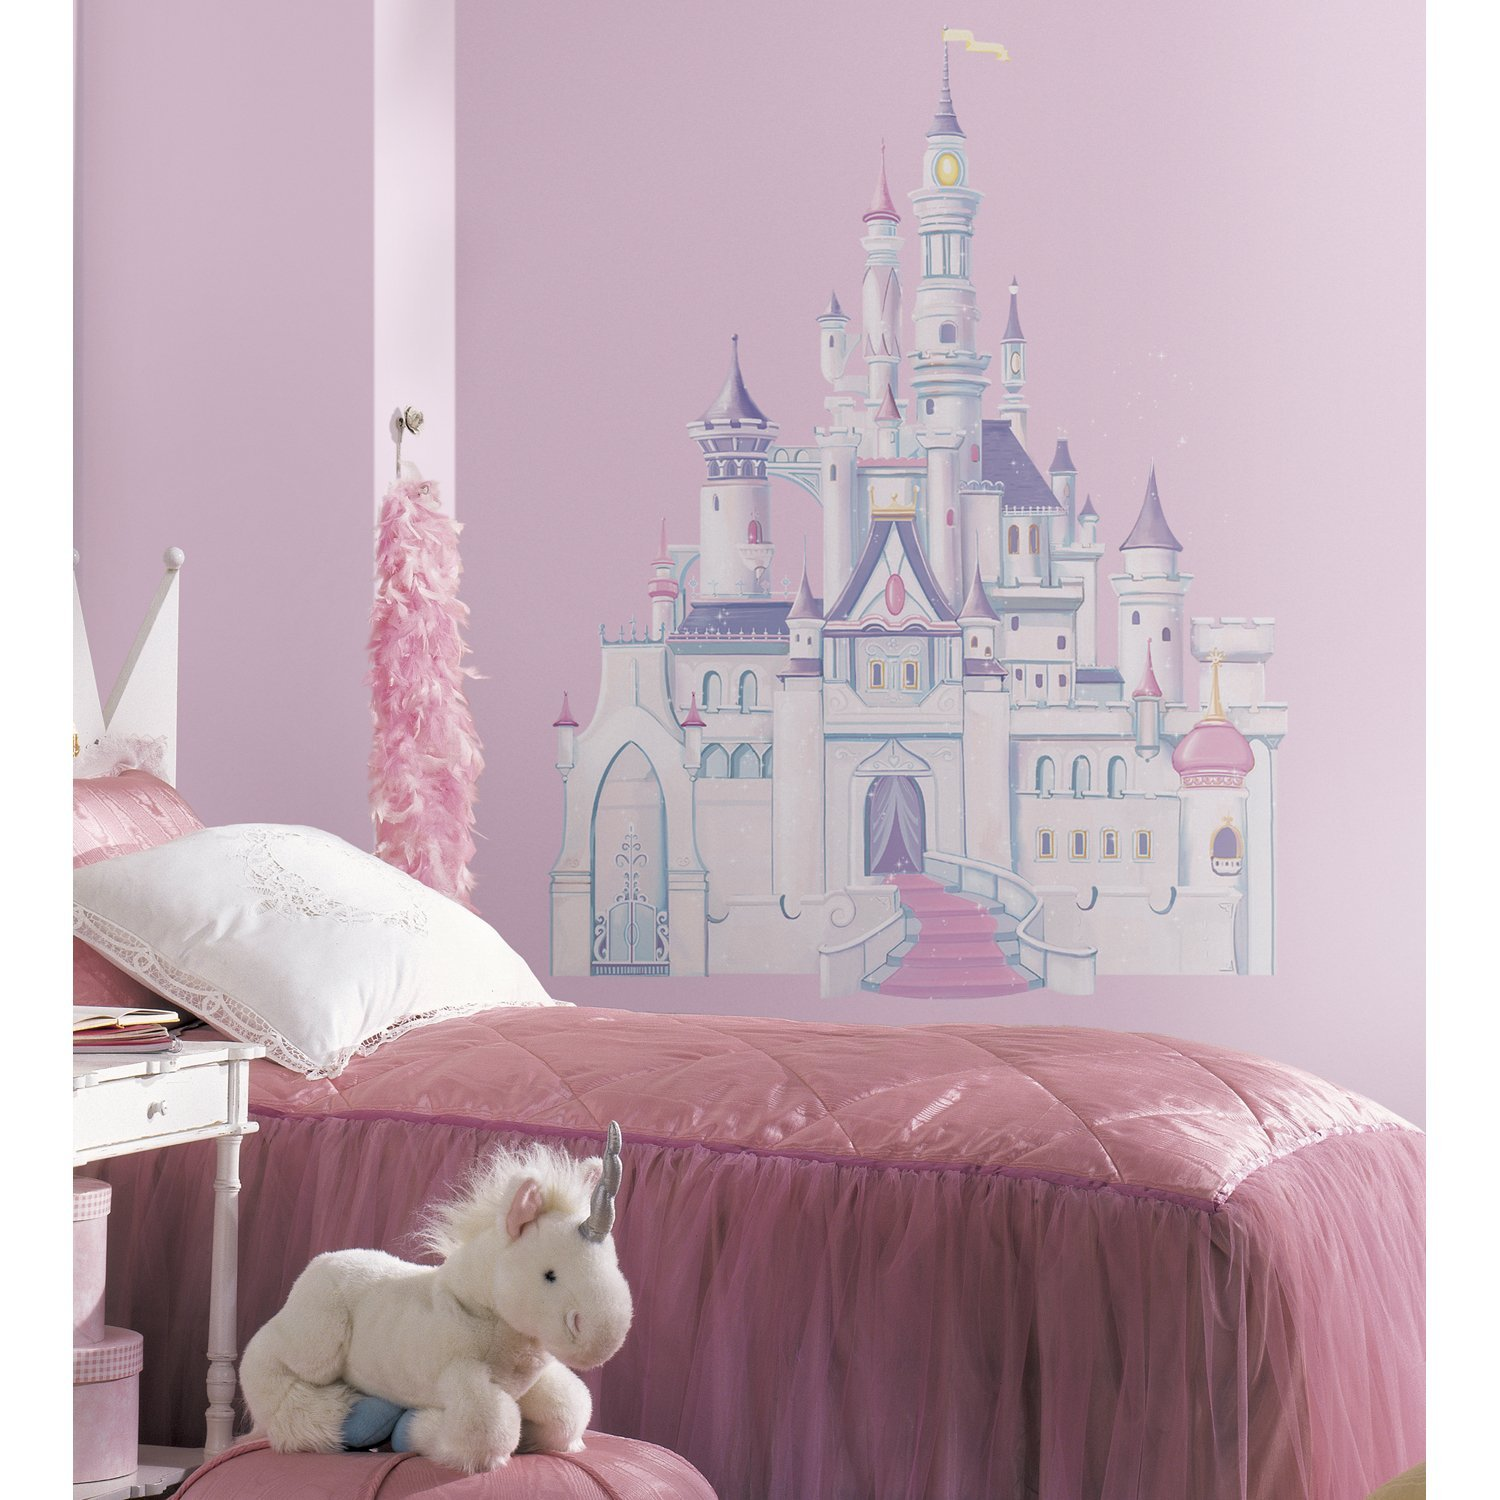 disney-castle-wall-decal.jpg